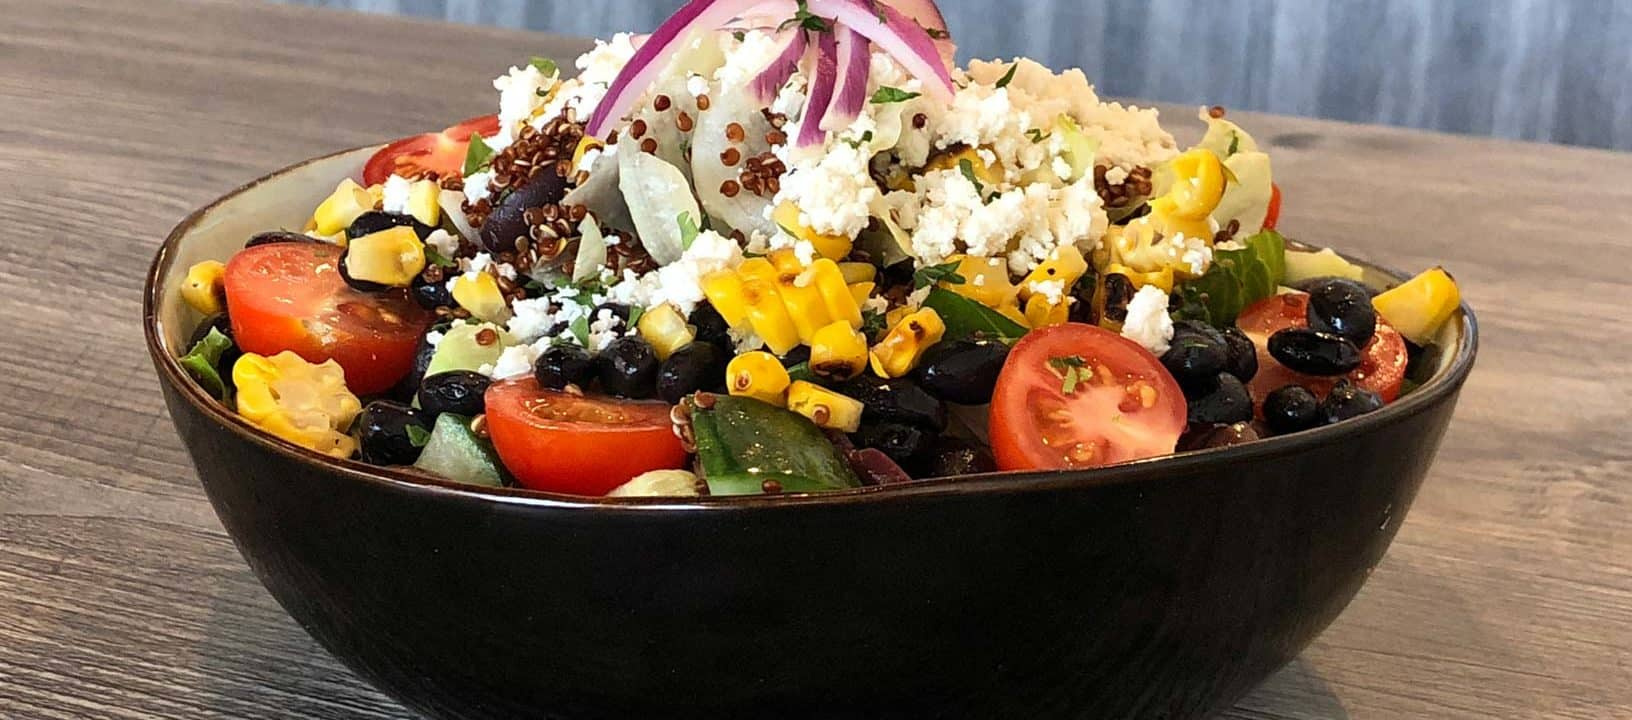 Fusion and favorites at LIT Café quinoa and vegetable salad